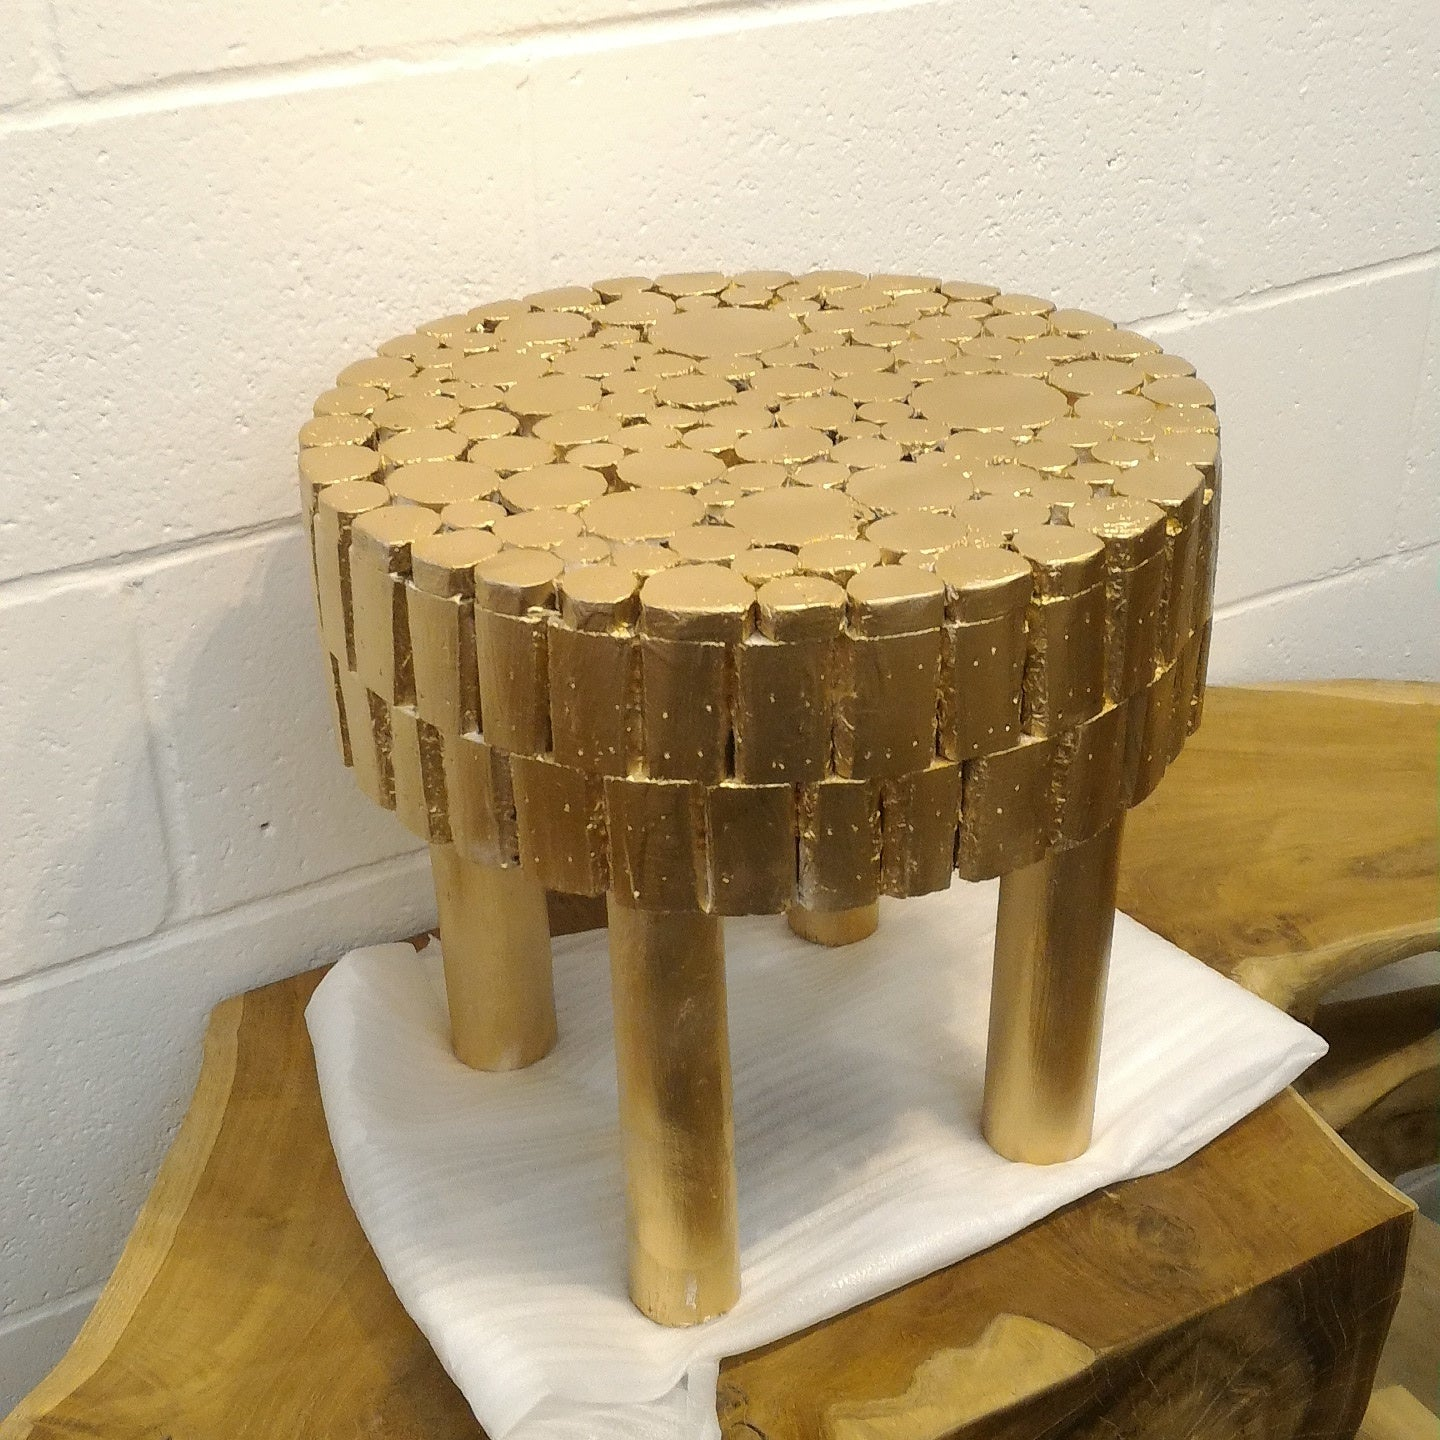 Solid Wood Coffee And End Tables For Sale: Handmade Fir Solid Wood Stool, Gold Leaf Accent Table